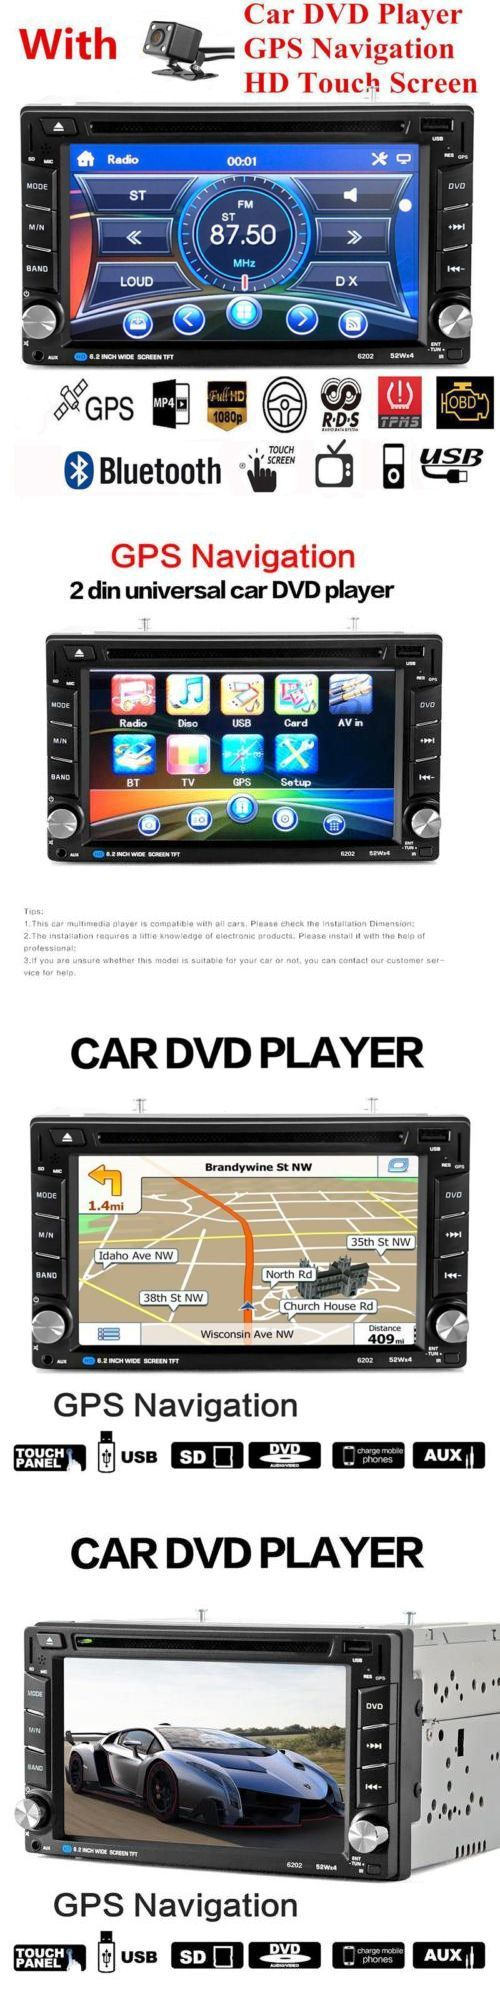 Video In-Dash Units w GPS: Hd 6.2 2 Din Gps Navigation Car Stereo Dvd Player Bluetooth With Backup Camera -> BUY IT NOW ONLY: $110.39 on eBay!